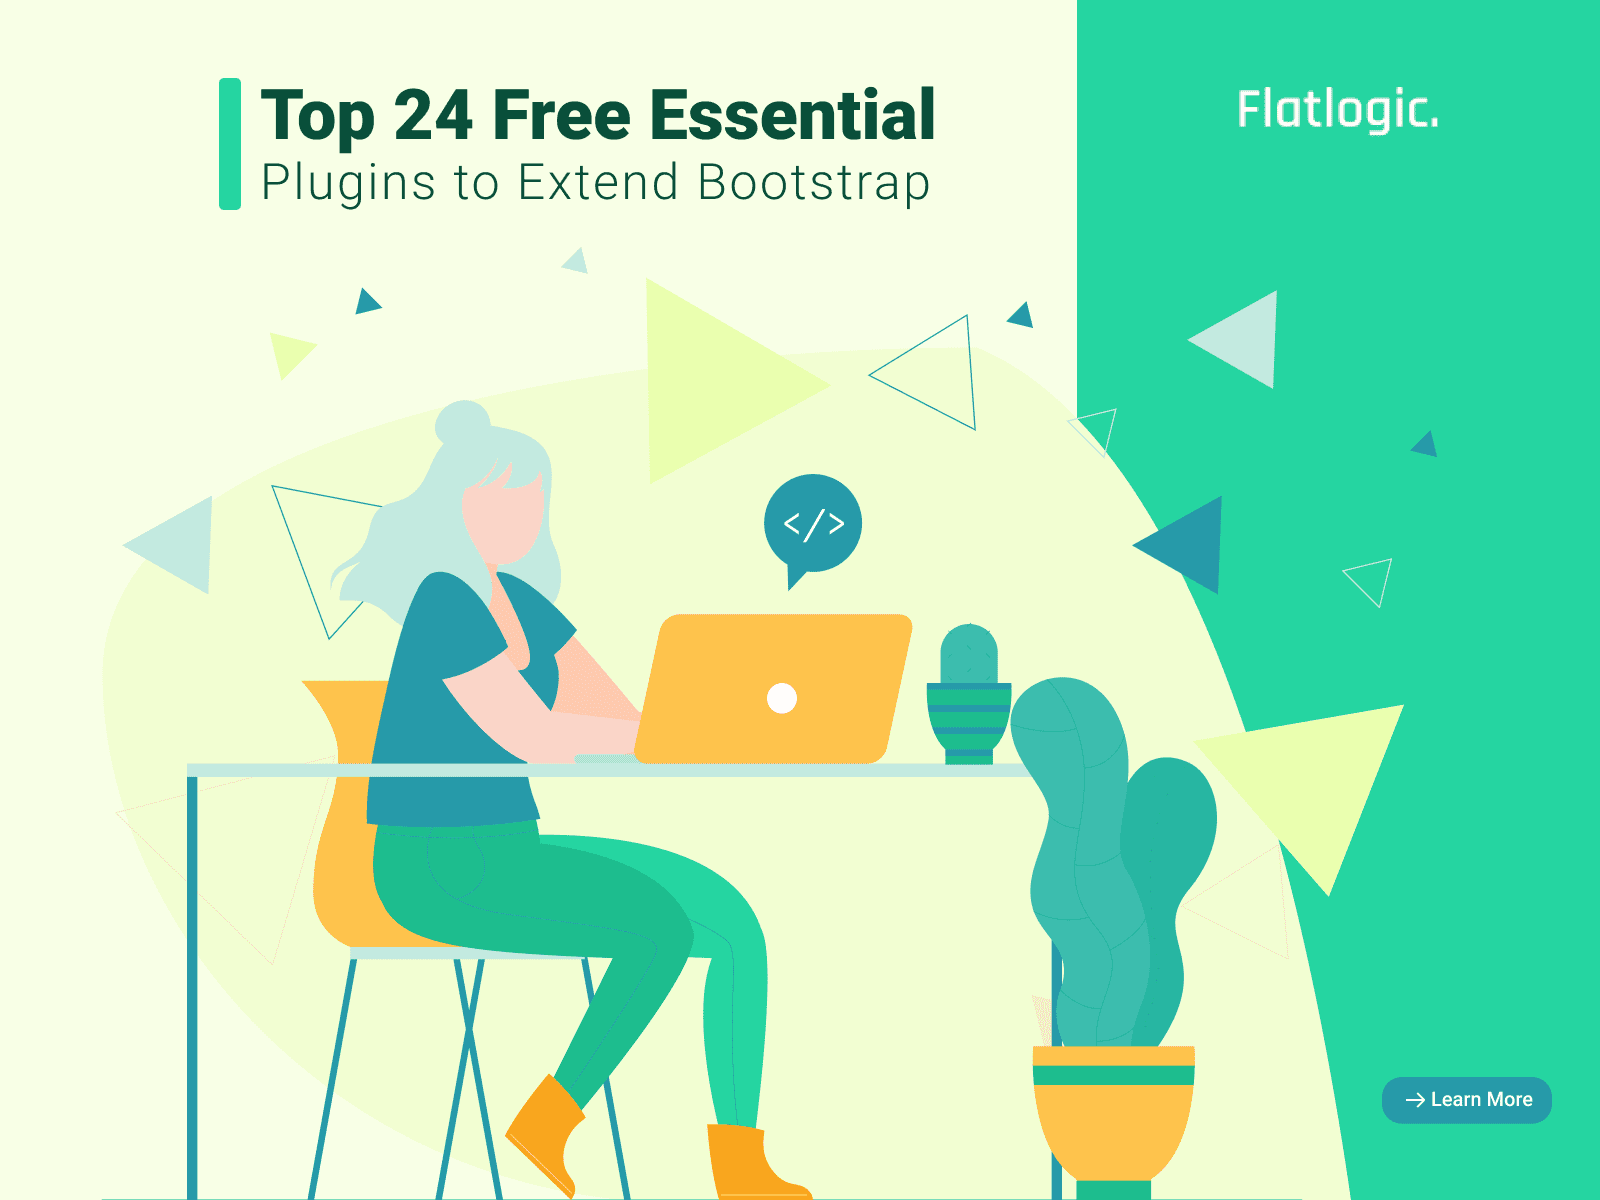 Top 24 Free Essential Plugins to Extend Bootstrap